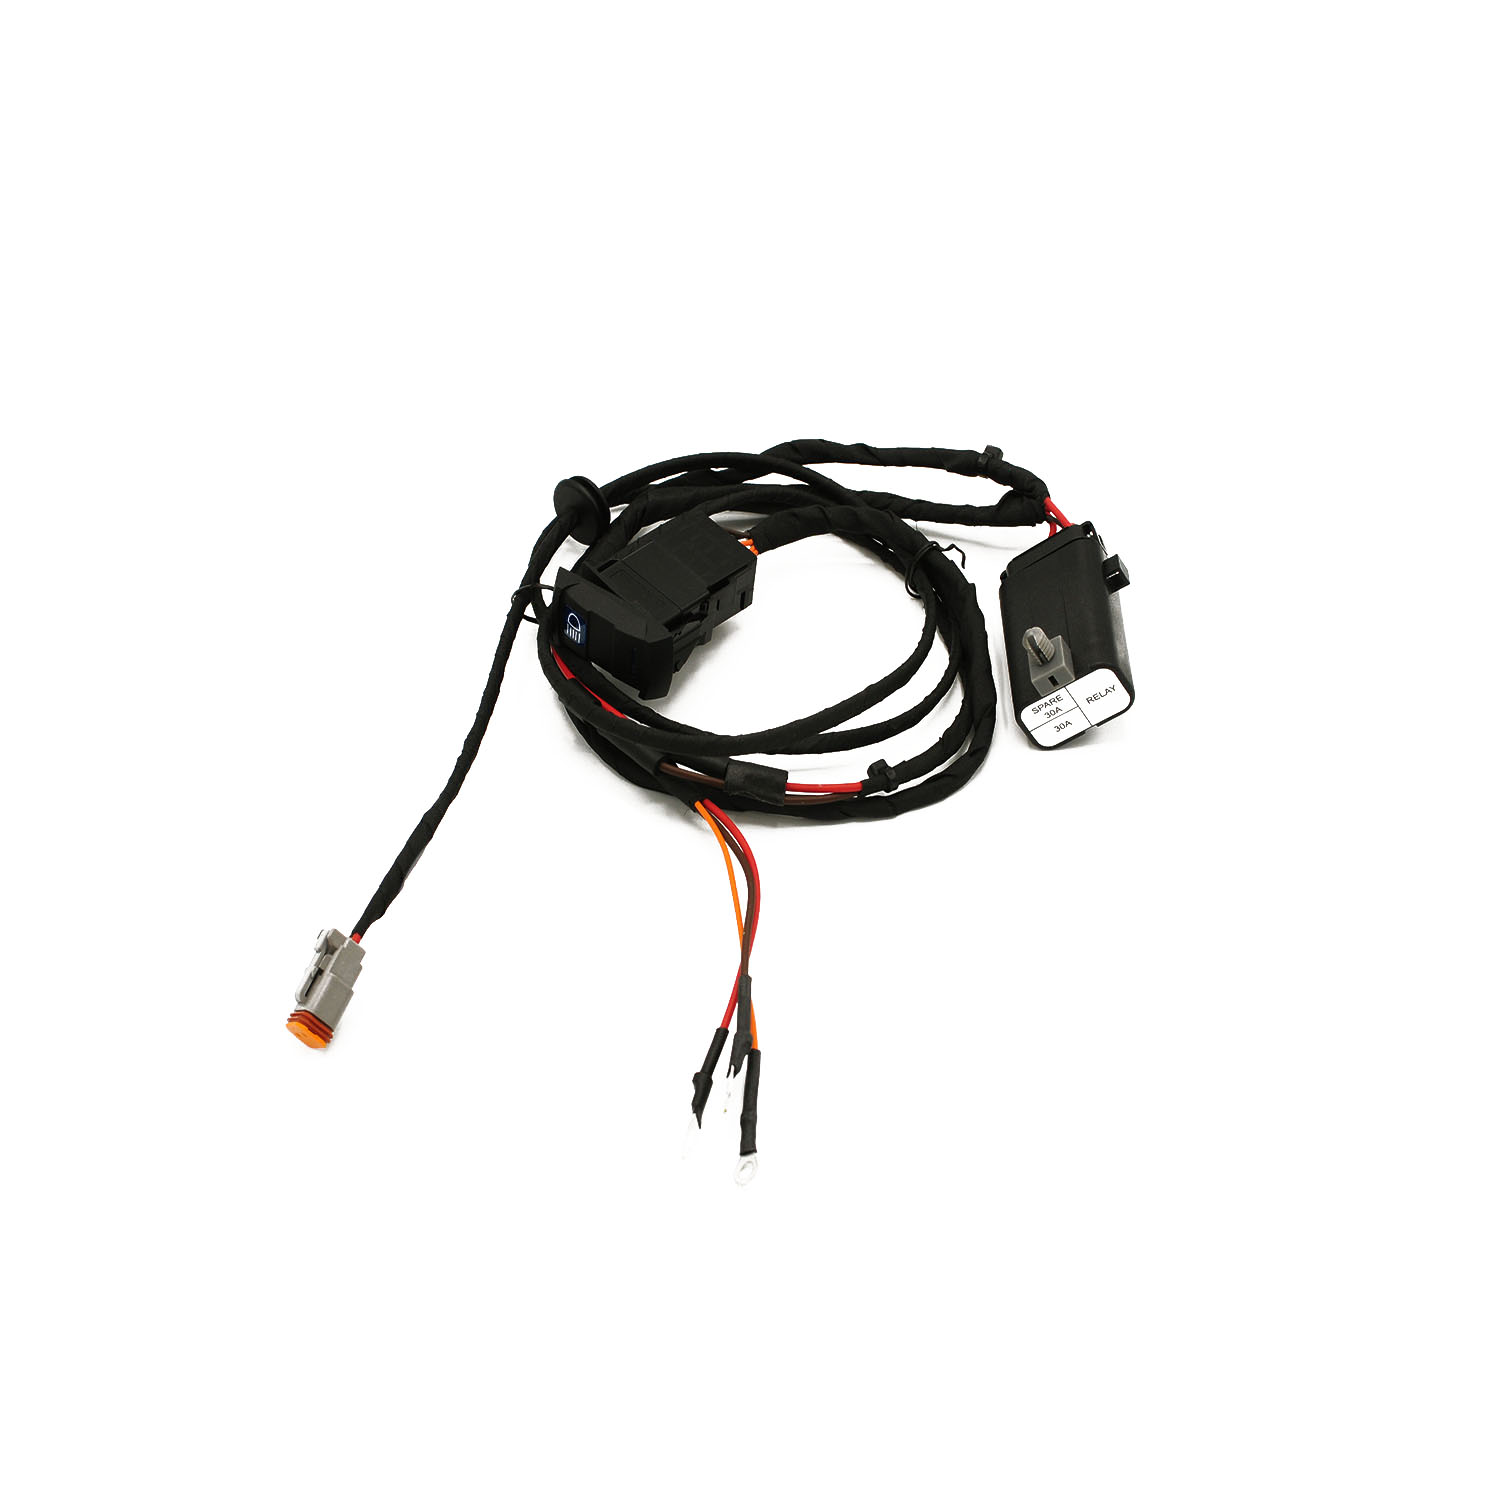 Polaris Wiring Harness Diagram Third Level Rhino 700 Fuel Filter Pulse 1 Led Light Ranger 2004 Sportsman